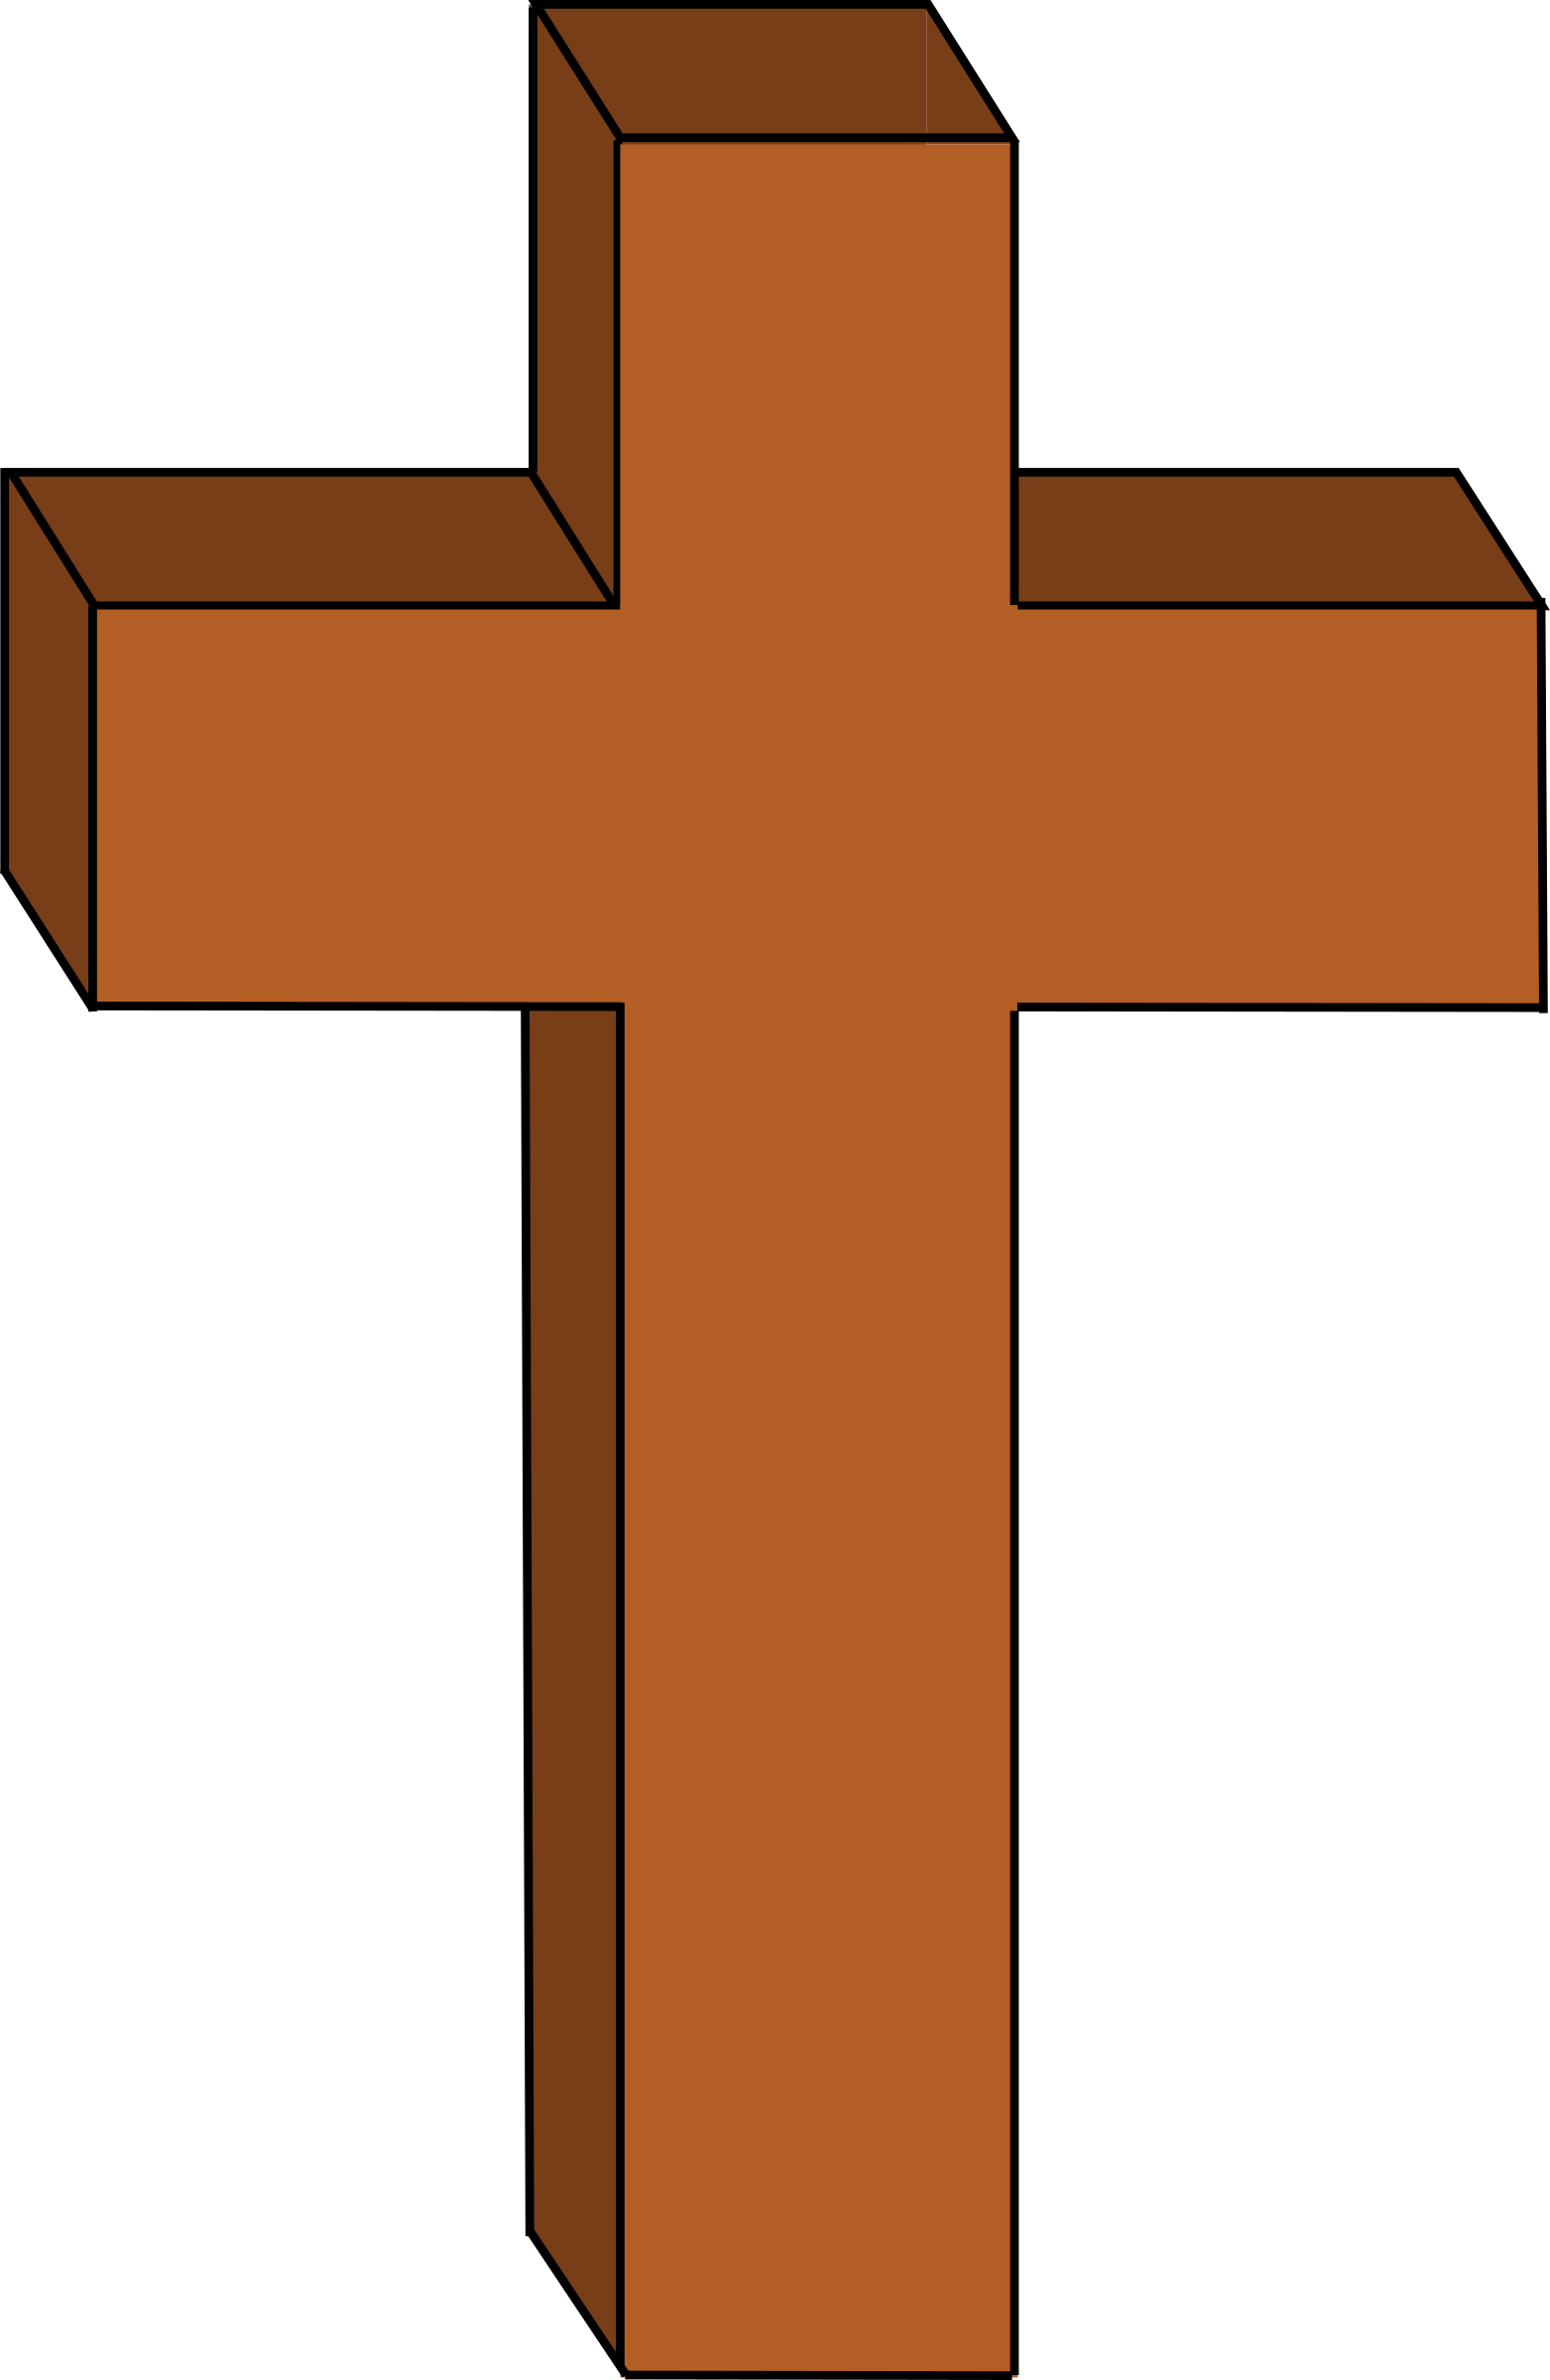 Cross of christ clipart image royalty free stock 3d Cross - Encode clipart to Base64 image royalty free stock